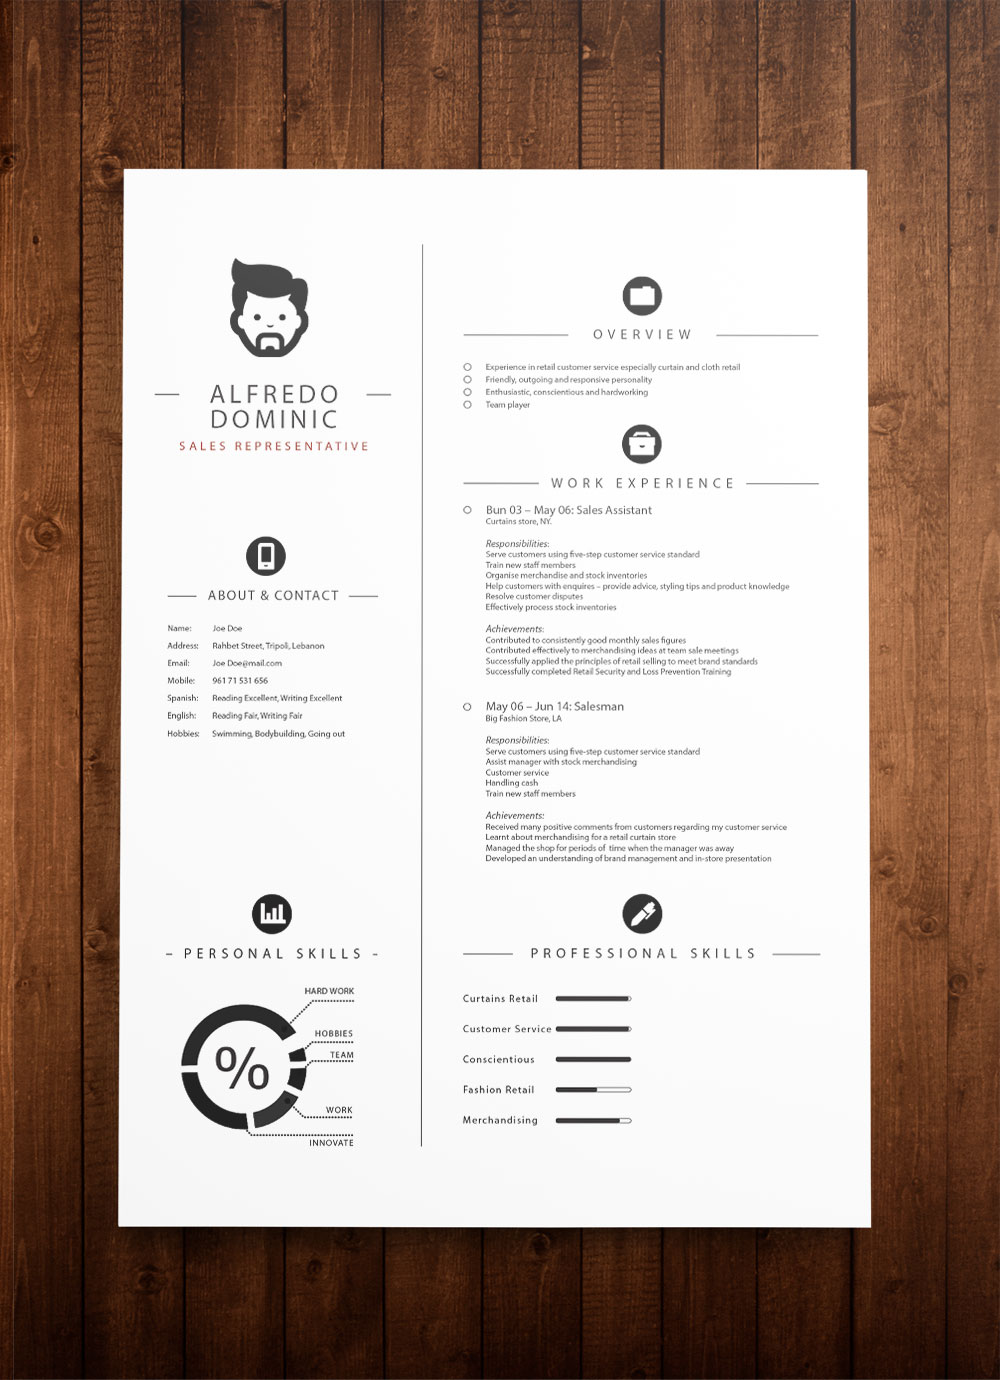 resume layout uk cover letter templates resume layout uk job winning online resume builder build a job winning template amp beautiful